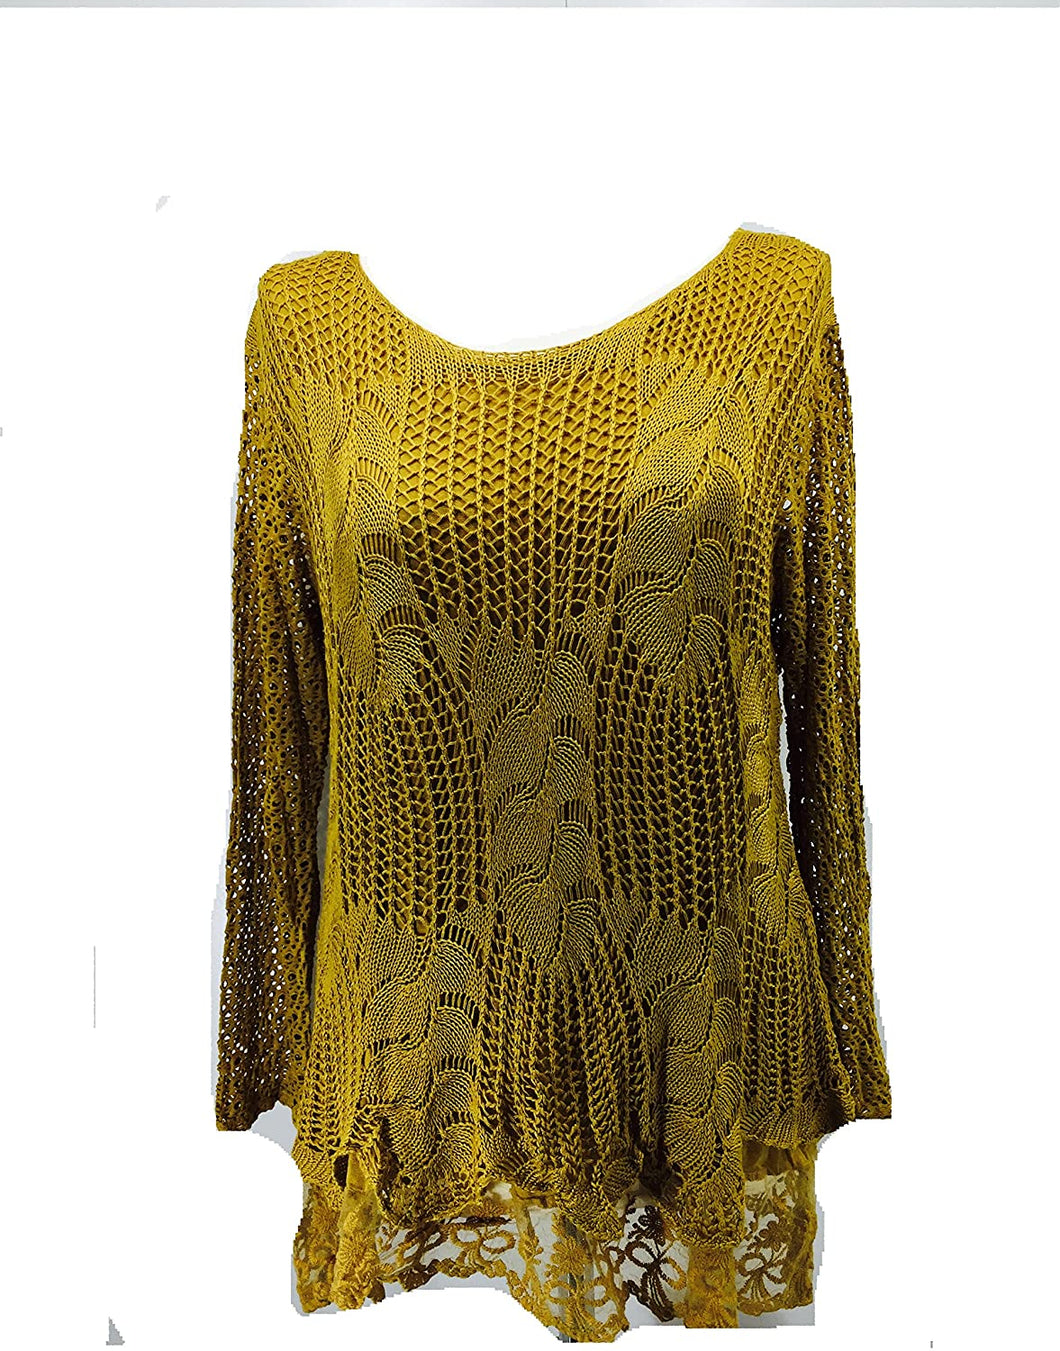 Pamper Yourself Now ltd Ladies Mustard Crochet lace Long Sleeve top. Made in Italy (AA27)